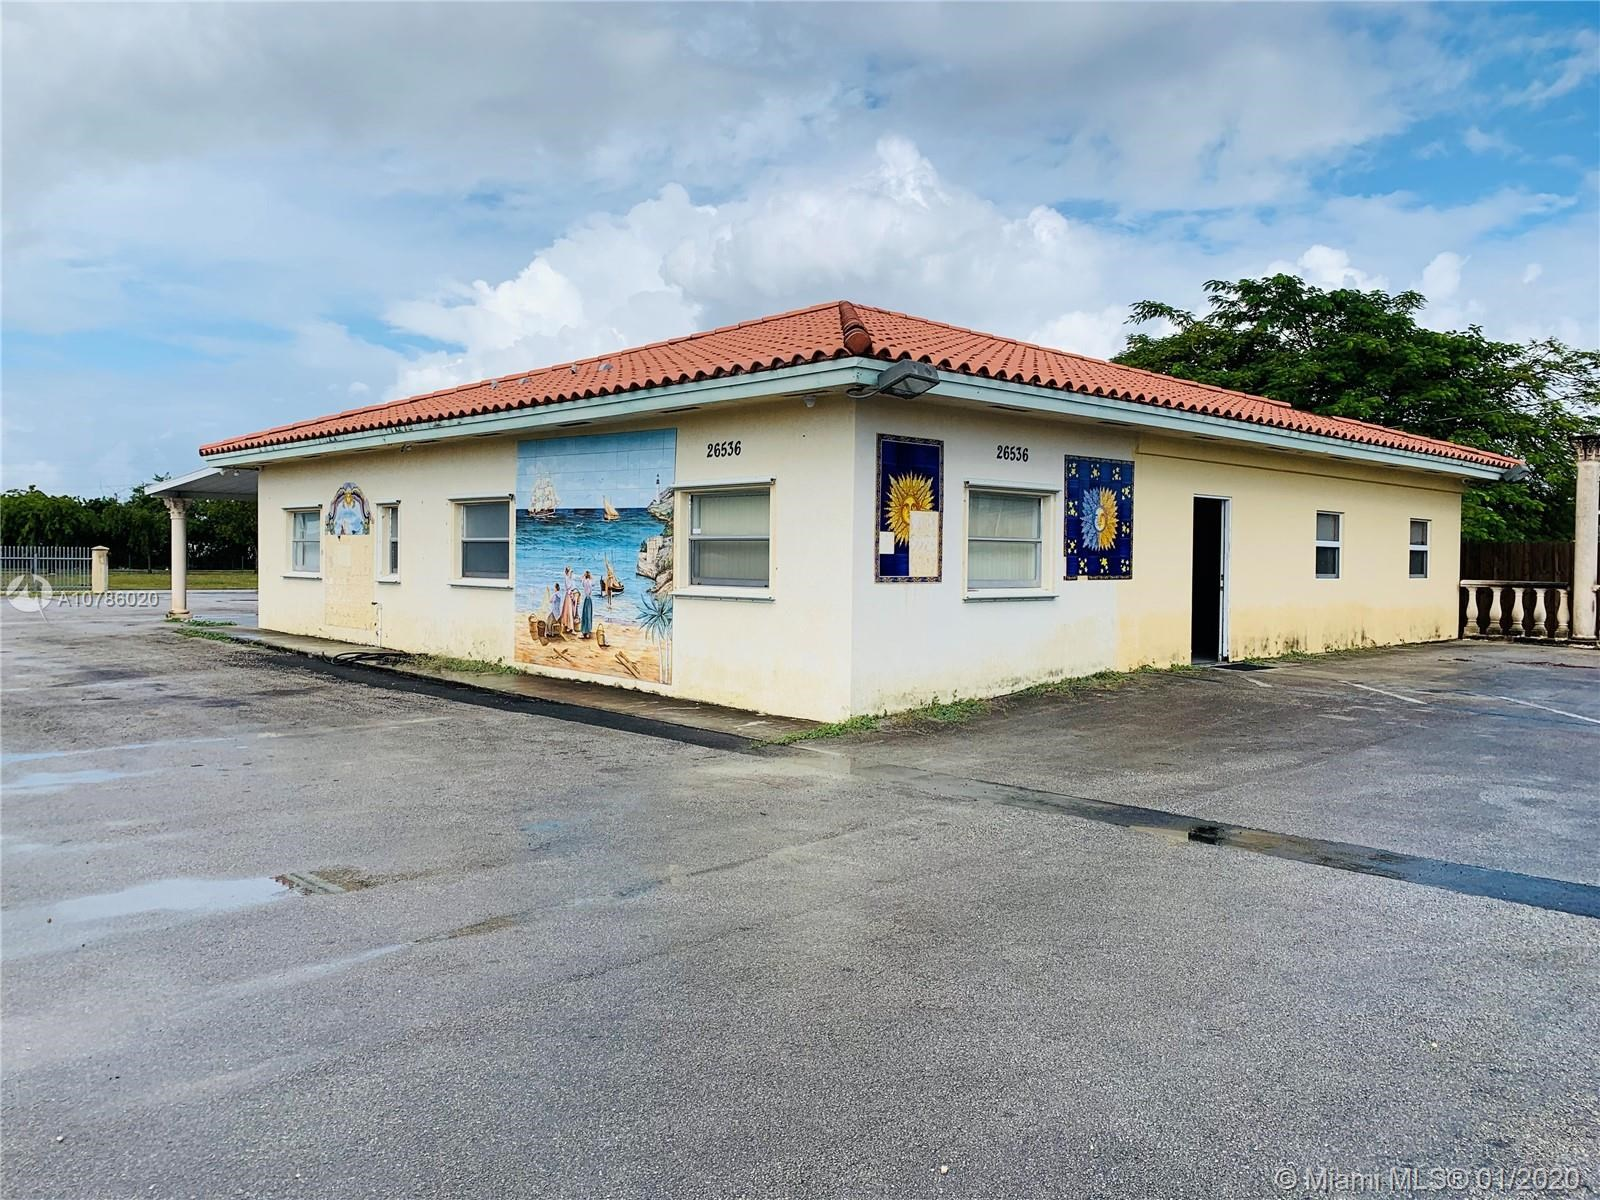 26536 S Dixie Hwy, Homestead, FL 33032